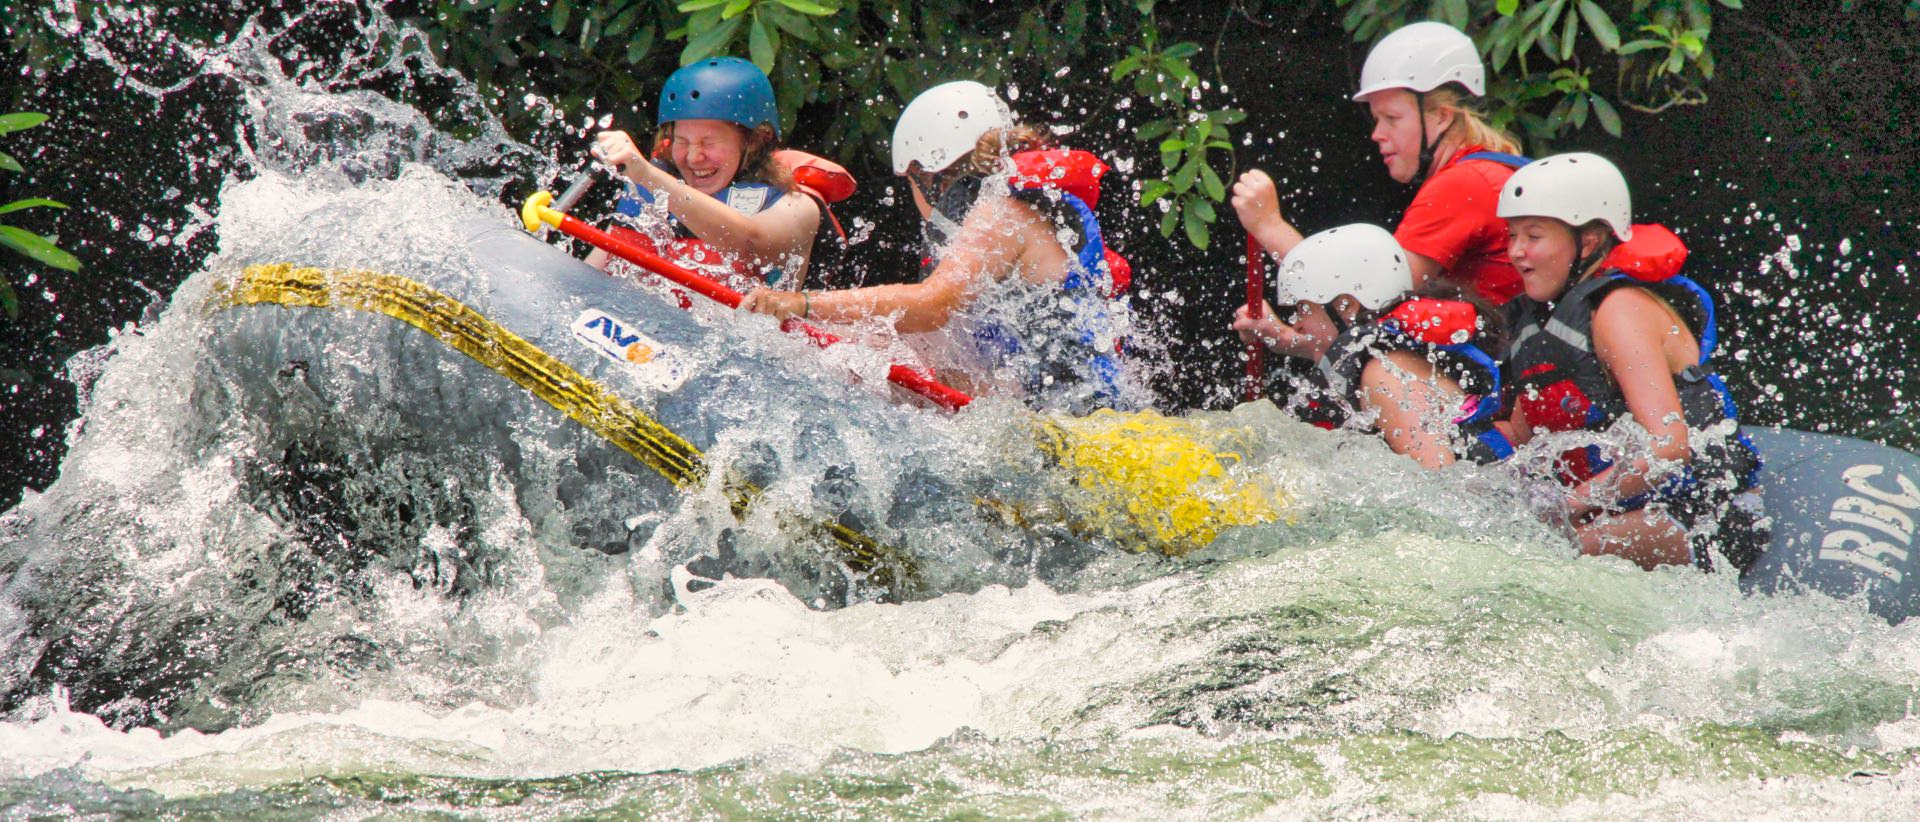 outdoor adventure rafting camp